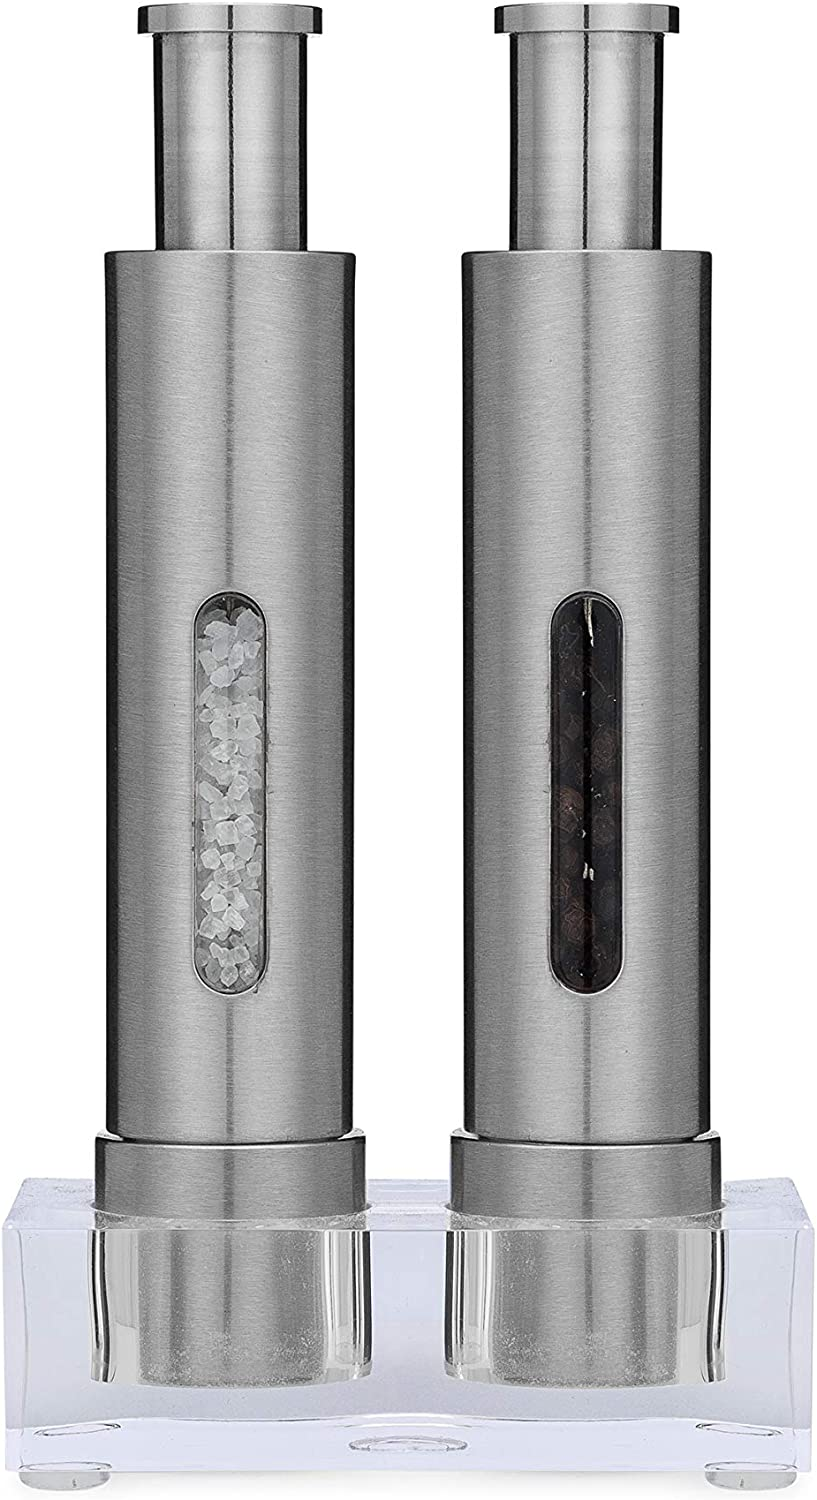 Grind Gourmet Salt and Pepper Grinder Outlet sale feature 2 Discount is also underway Set with of Thumb Modern